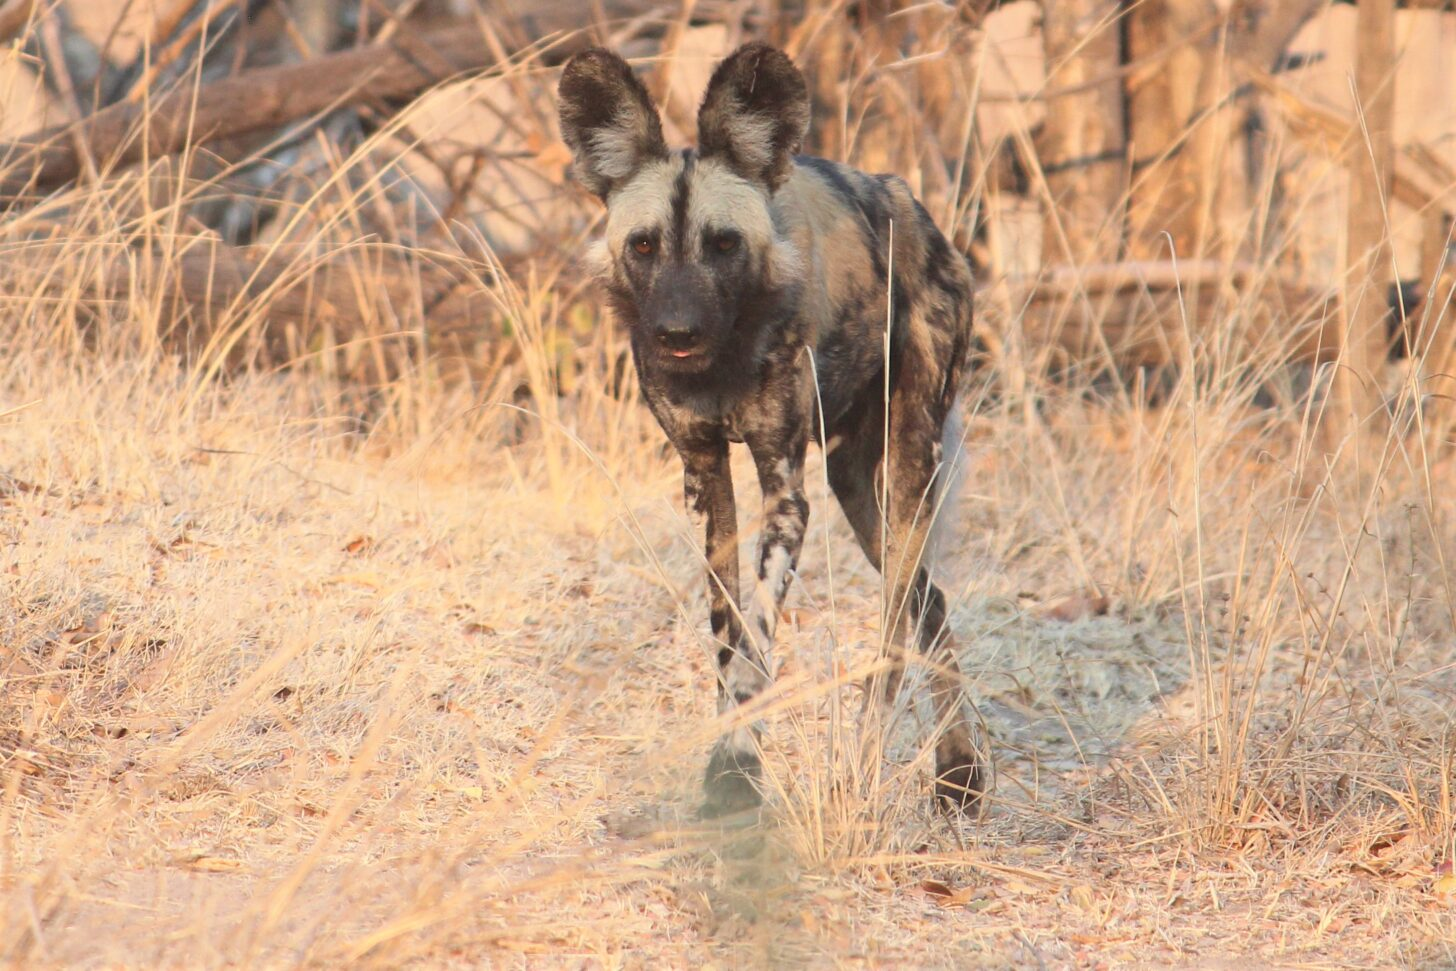 a lean, beautifully colored wild dog stares at the camera